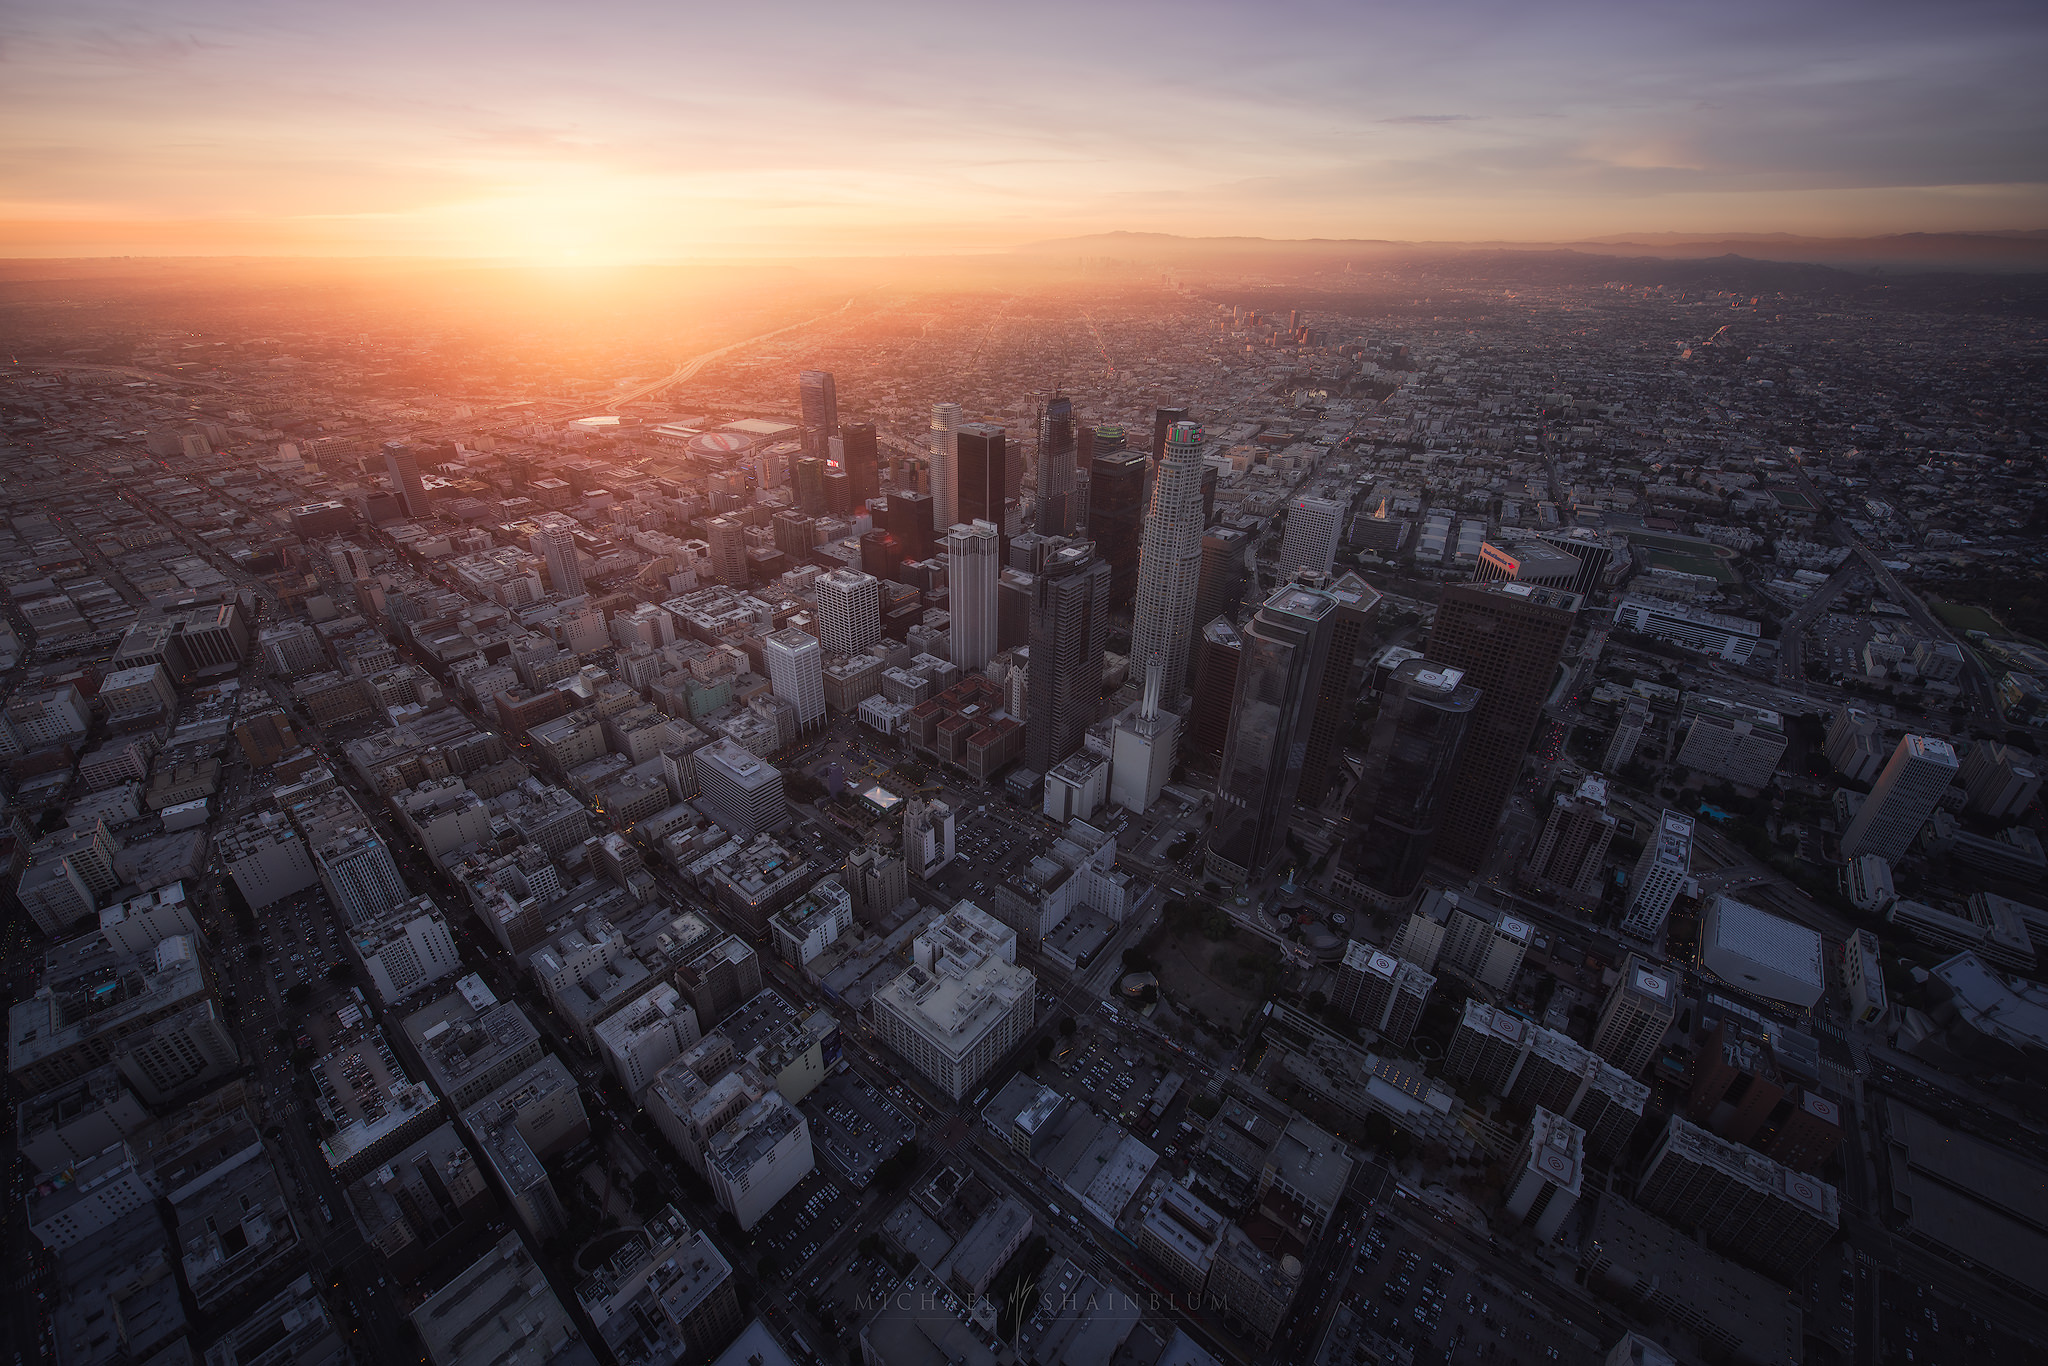 Downtown Los Angeles aerial photography at sunset.